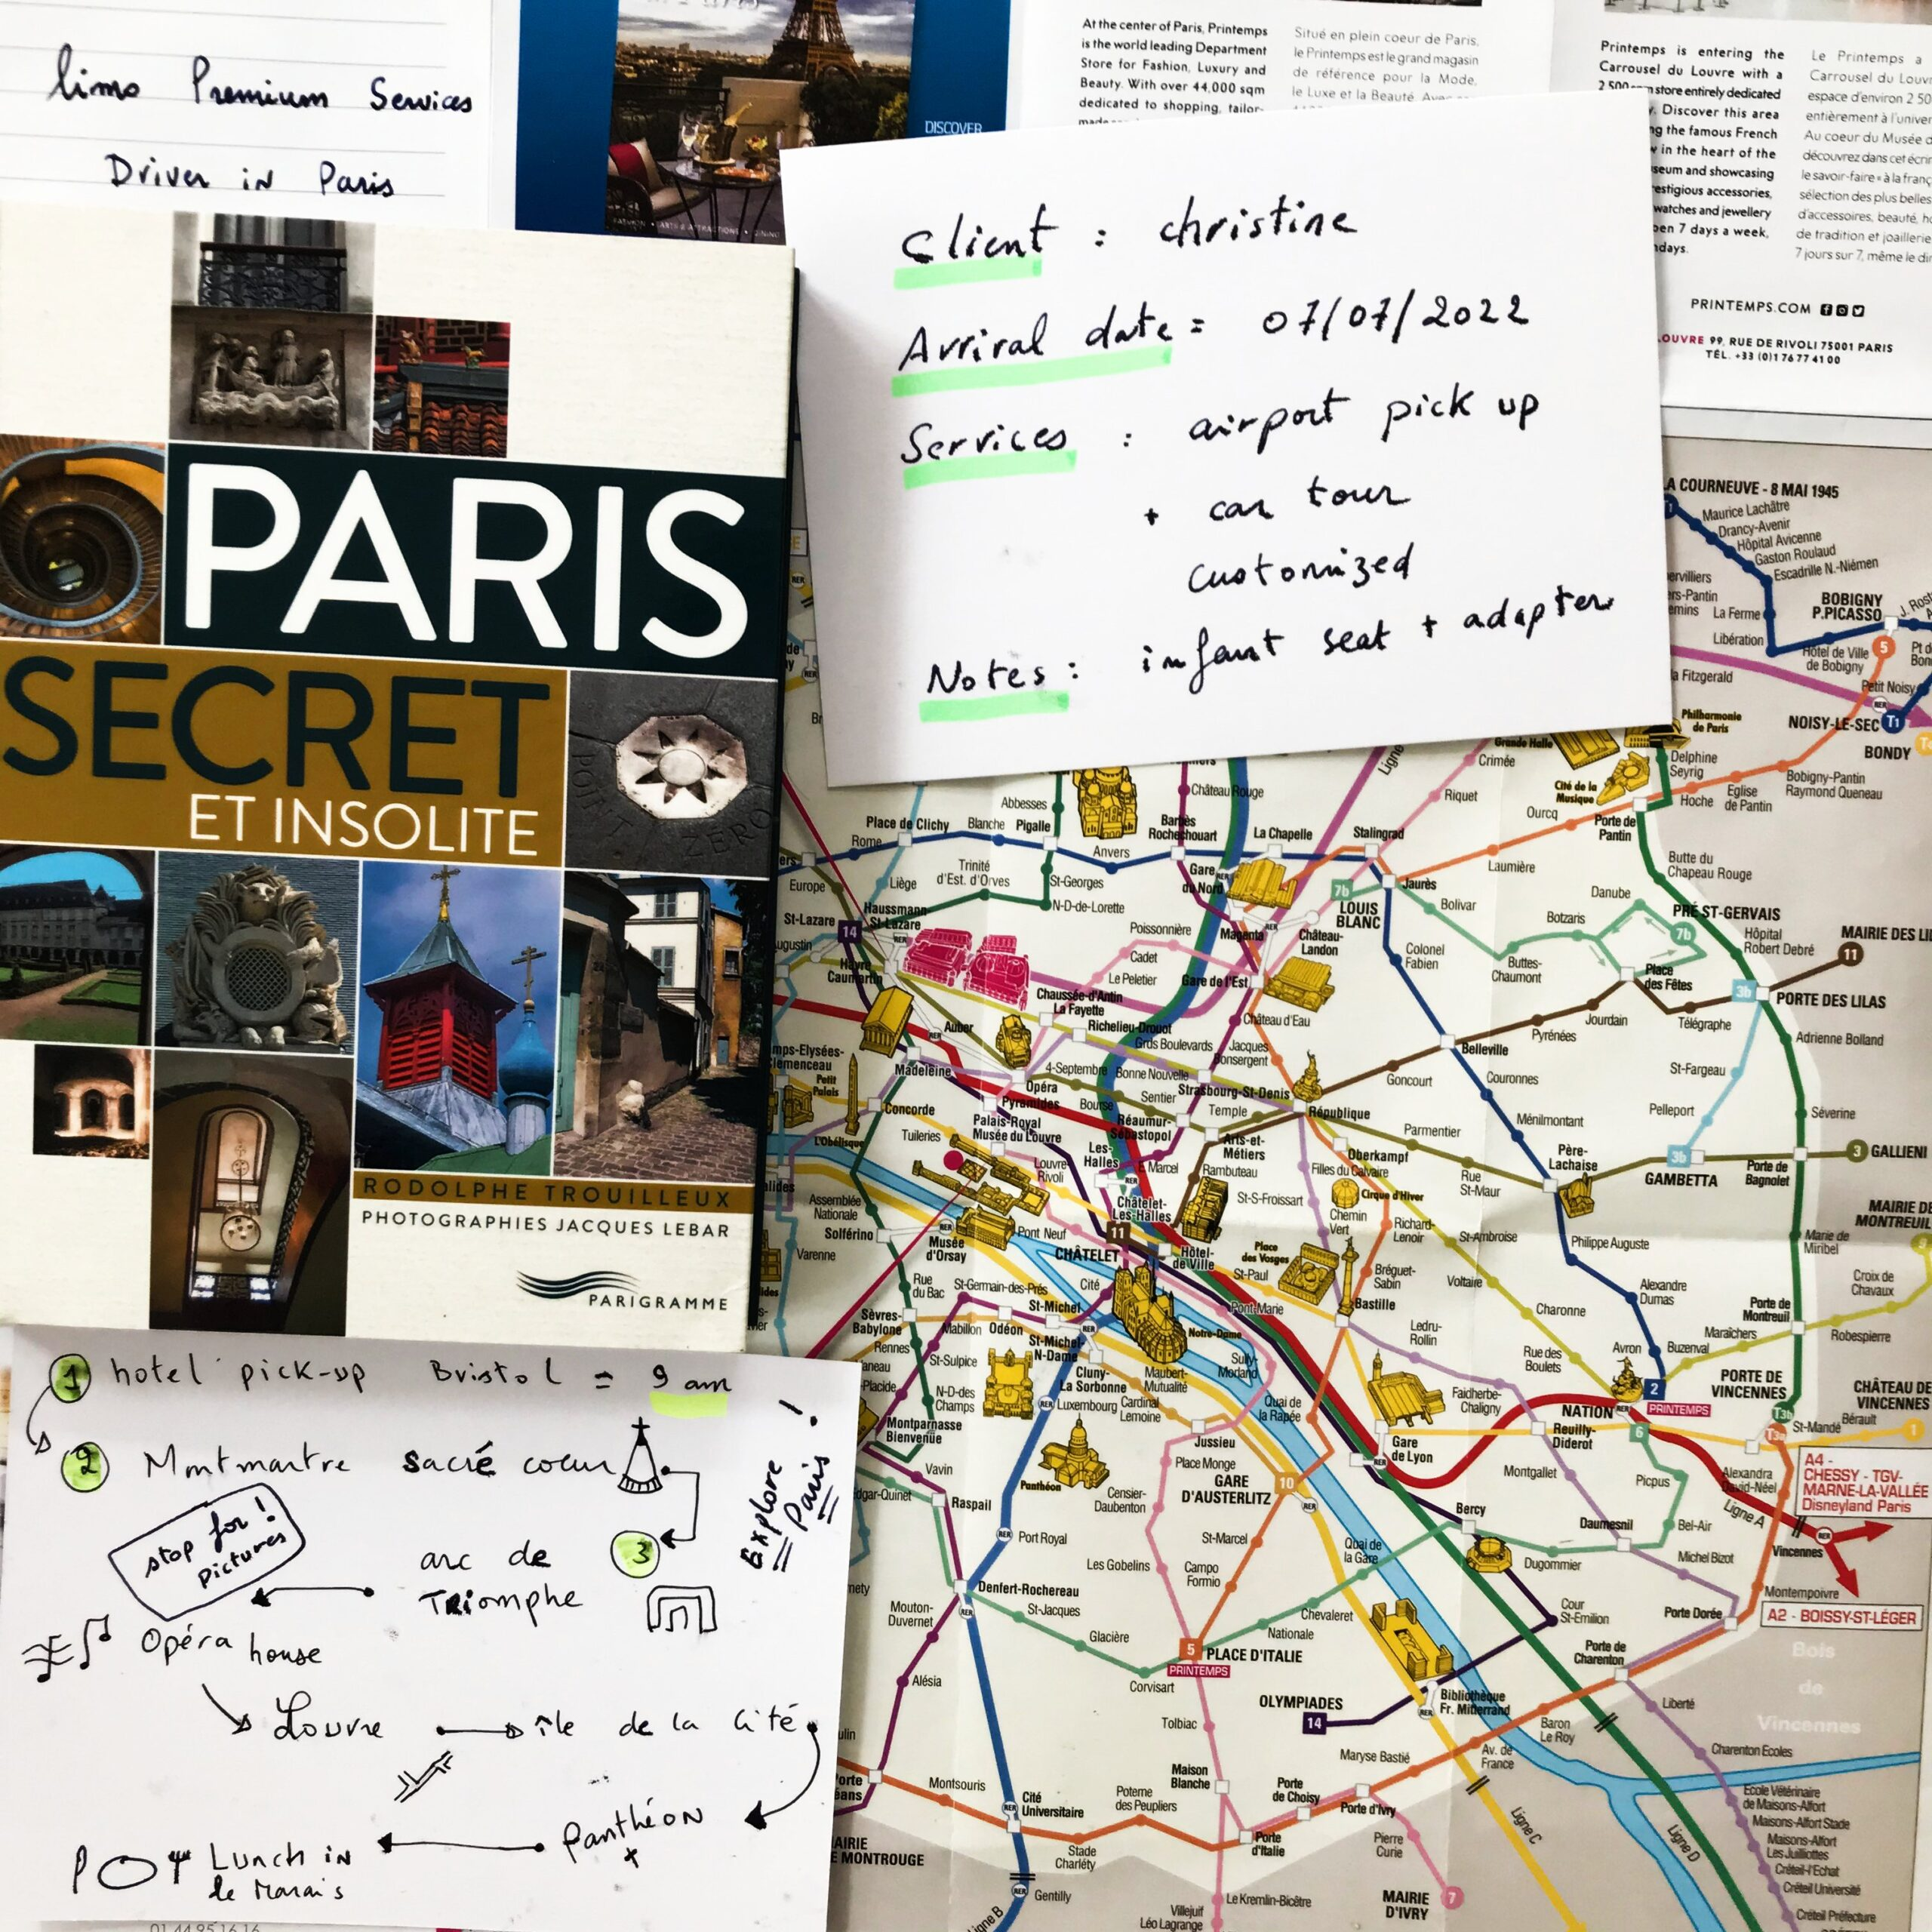 Map of Paris Limo premium services Driver in Paris customized itinerary for a car tour in paris 2021